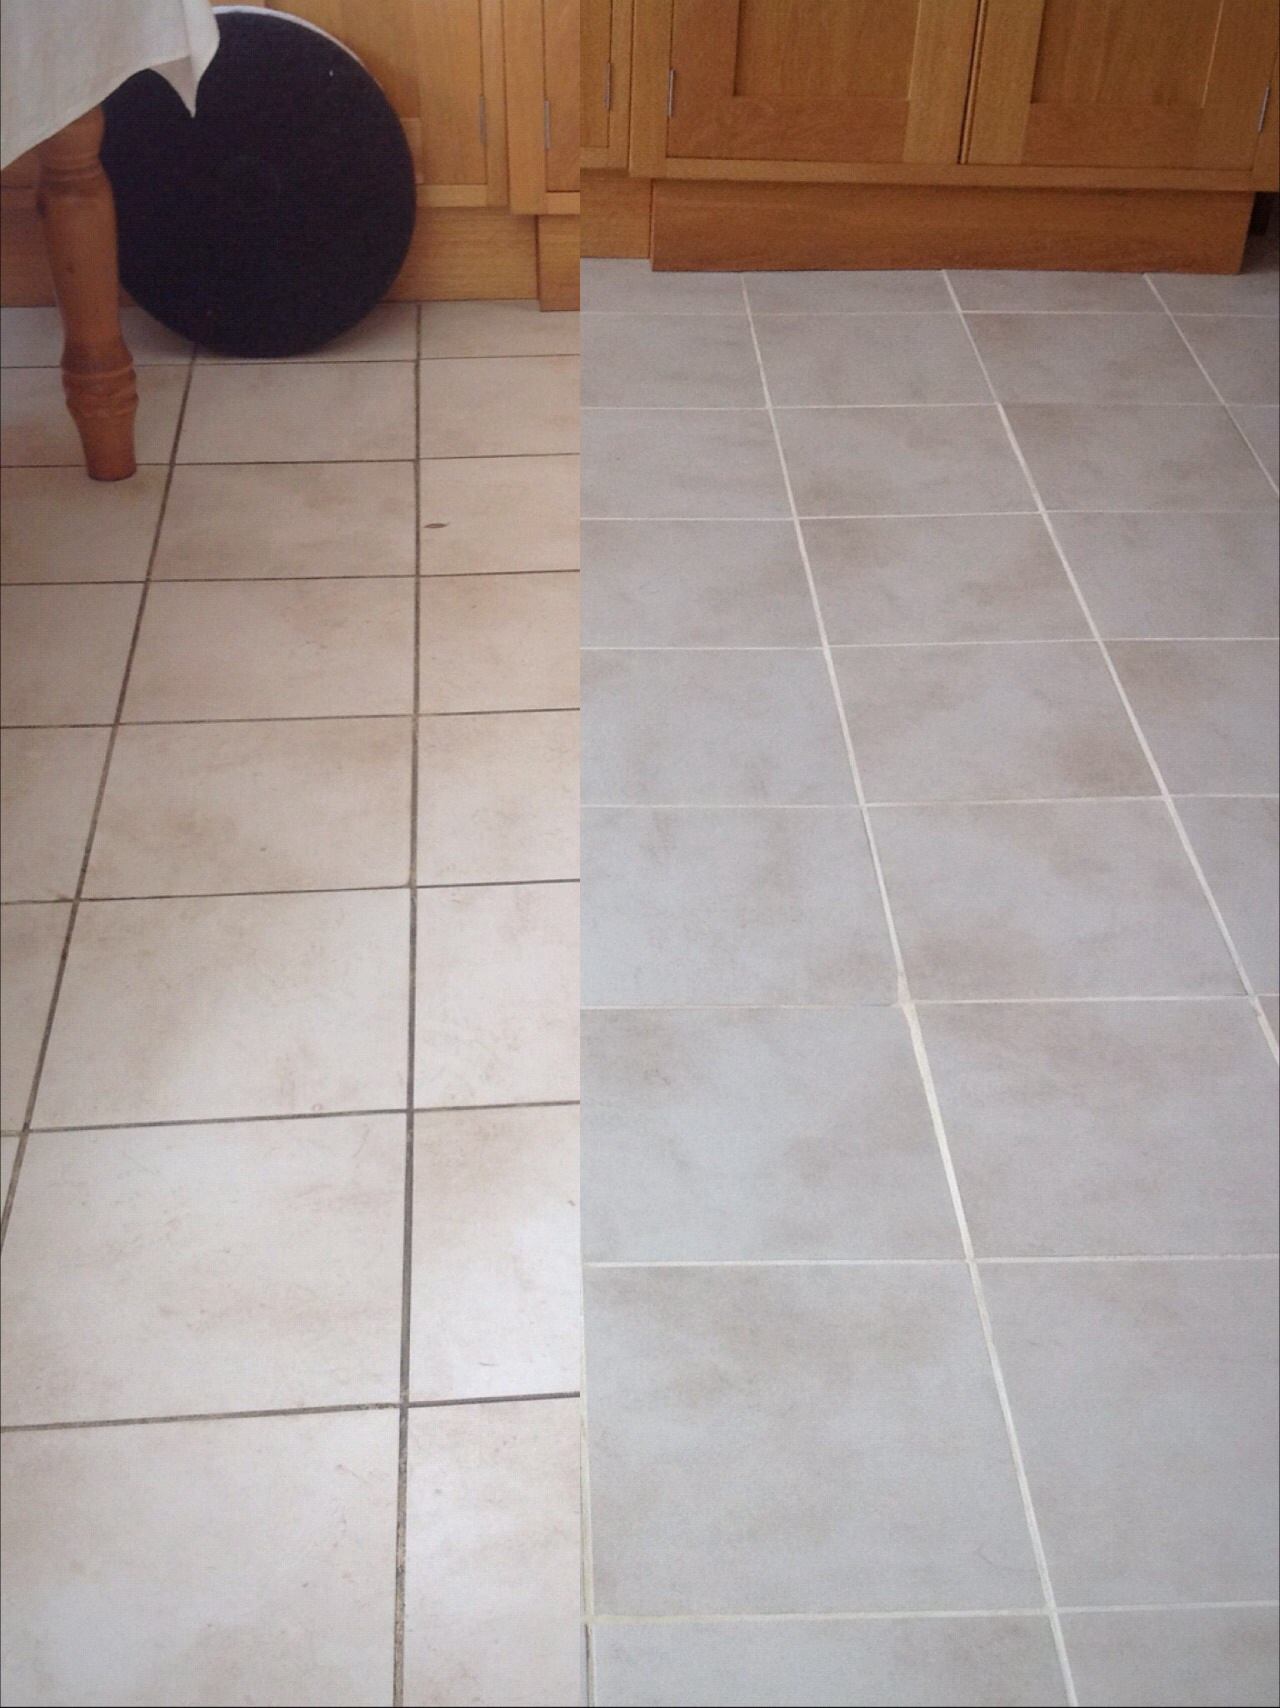 How to clean ceramic floor tiles after grouting flooring ideas and cleaning kitchen floor tile and grout protection dailygadgetfo Gallery